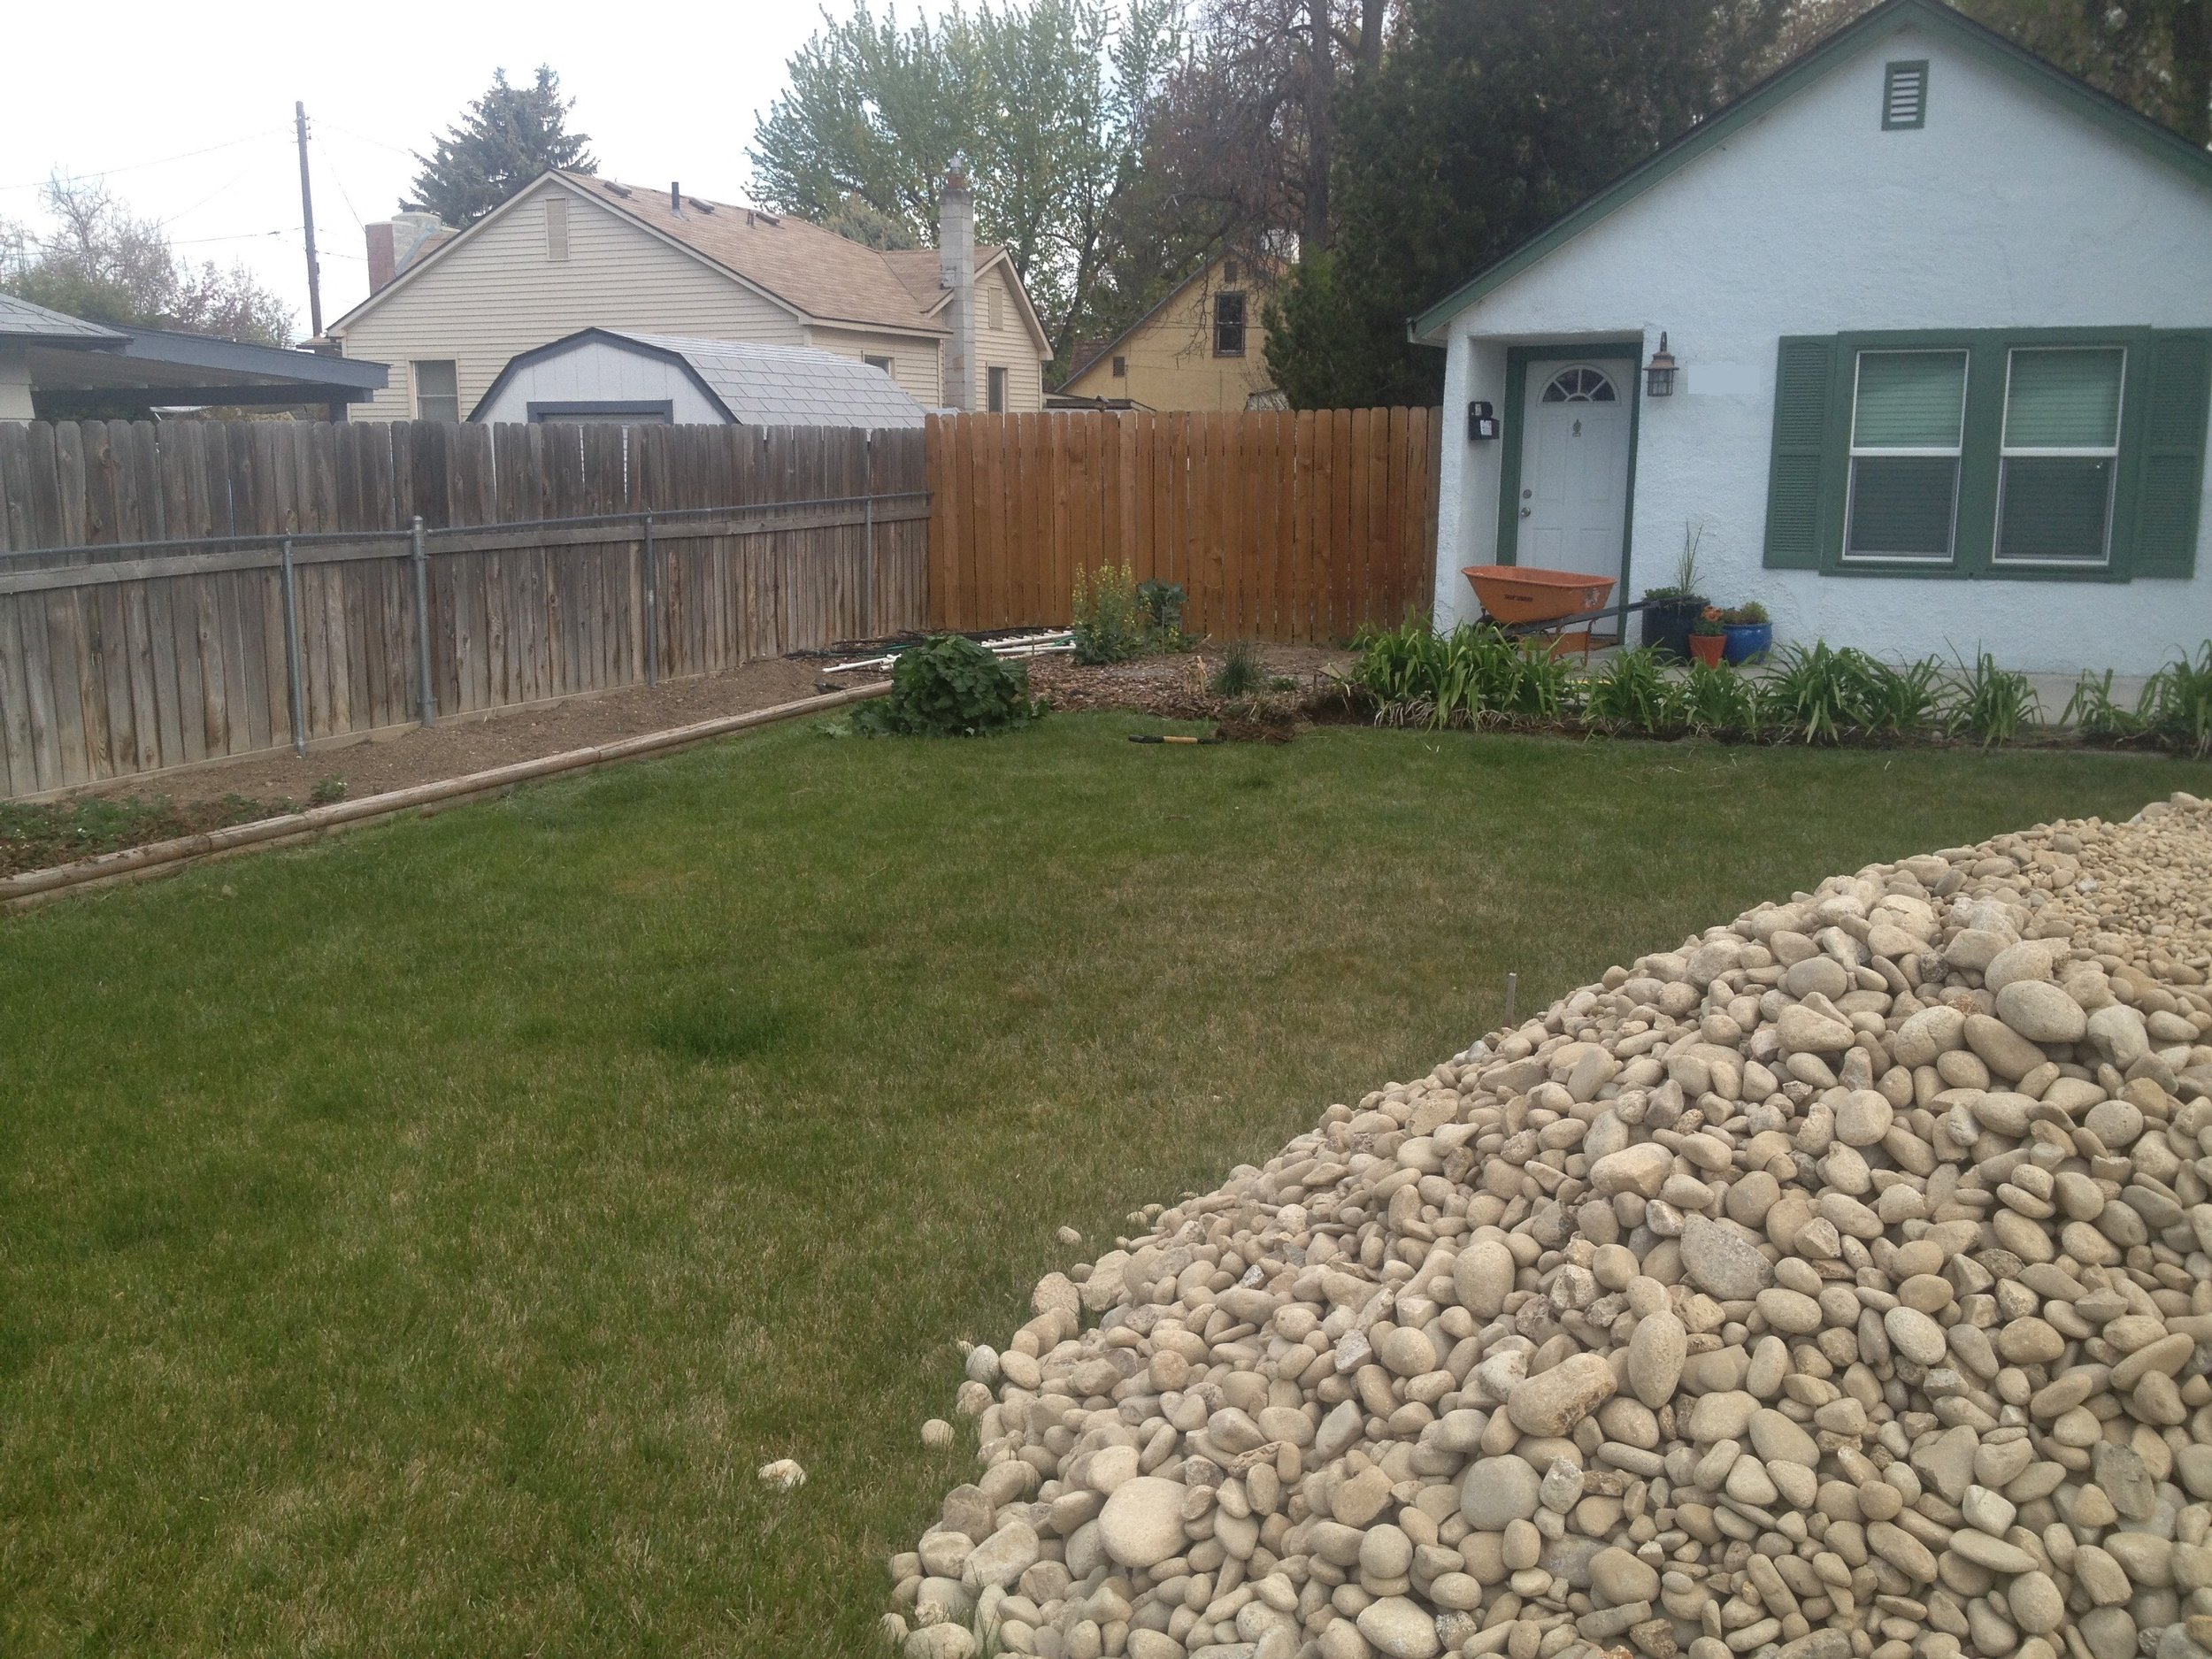 YEAR 1  Over the lawn that the homeowners removed, we added berms of a topsoil mix, drip lines, and plants, such as fringed sage, fleabane, Texas red yucca, and sagebrush.